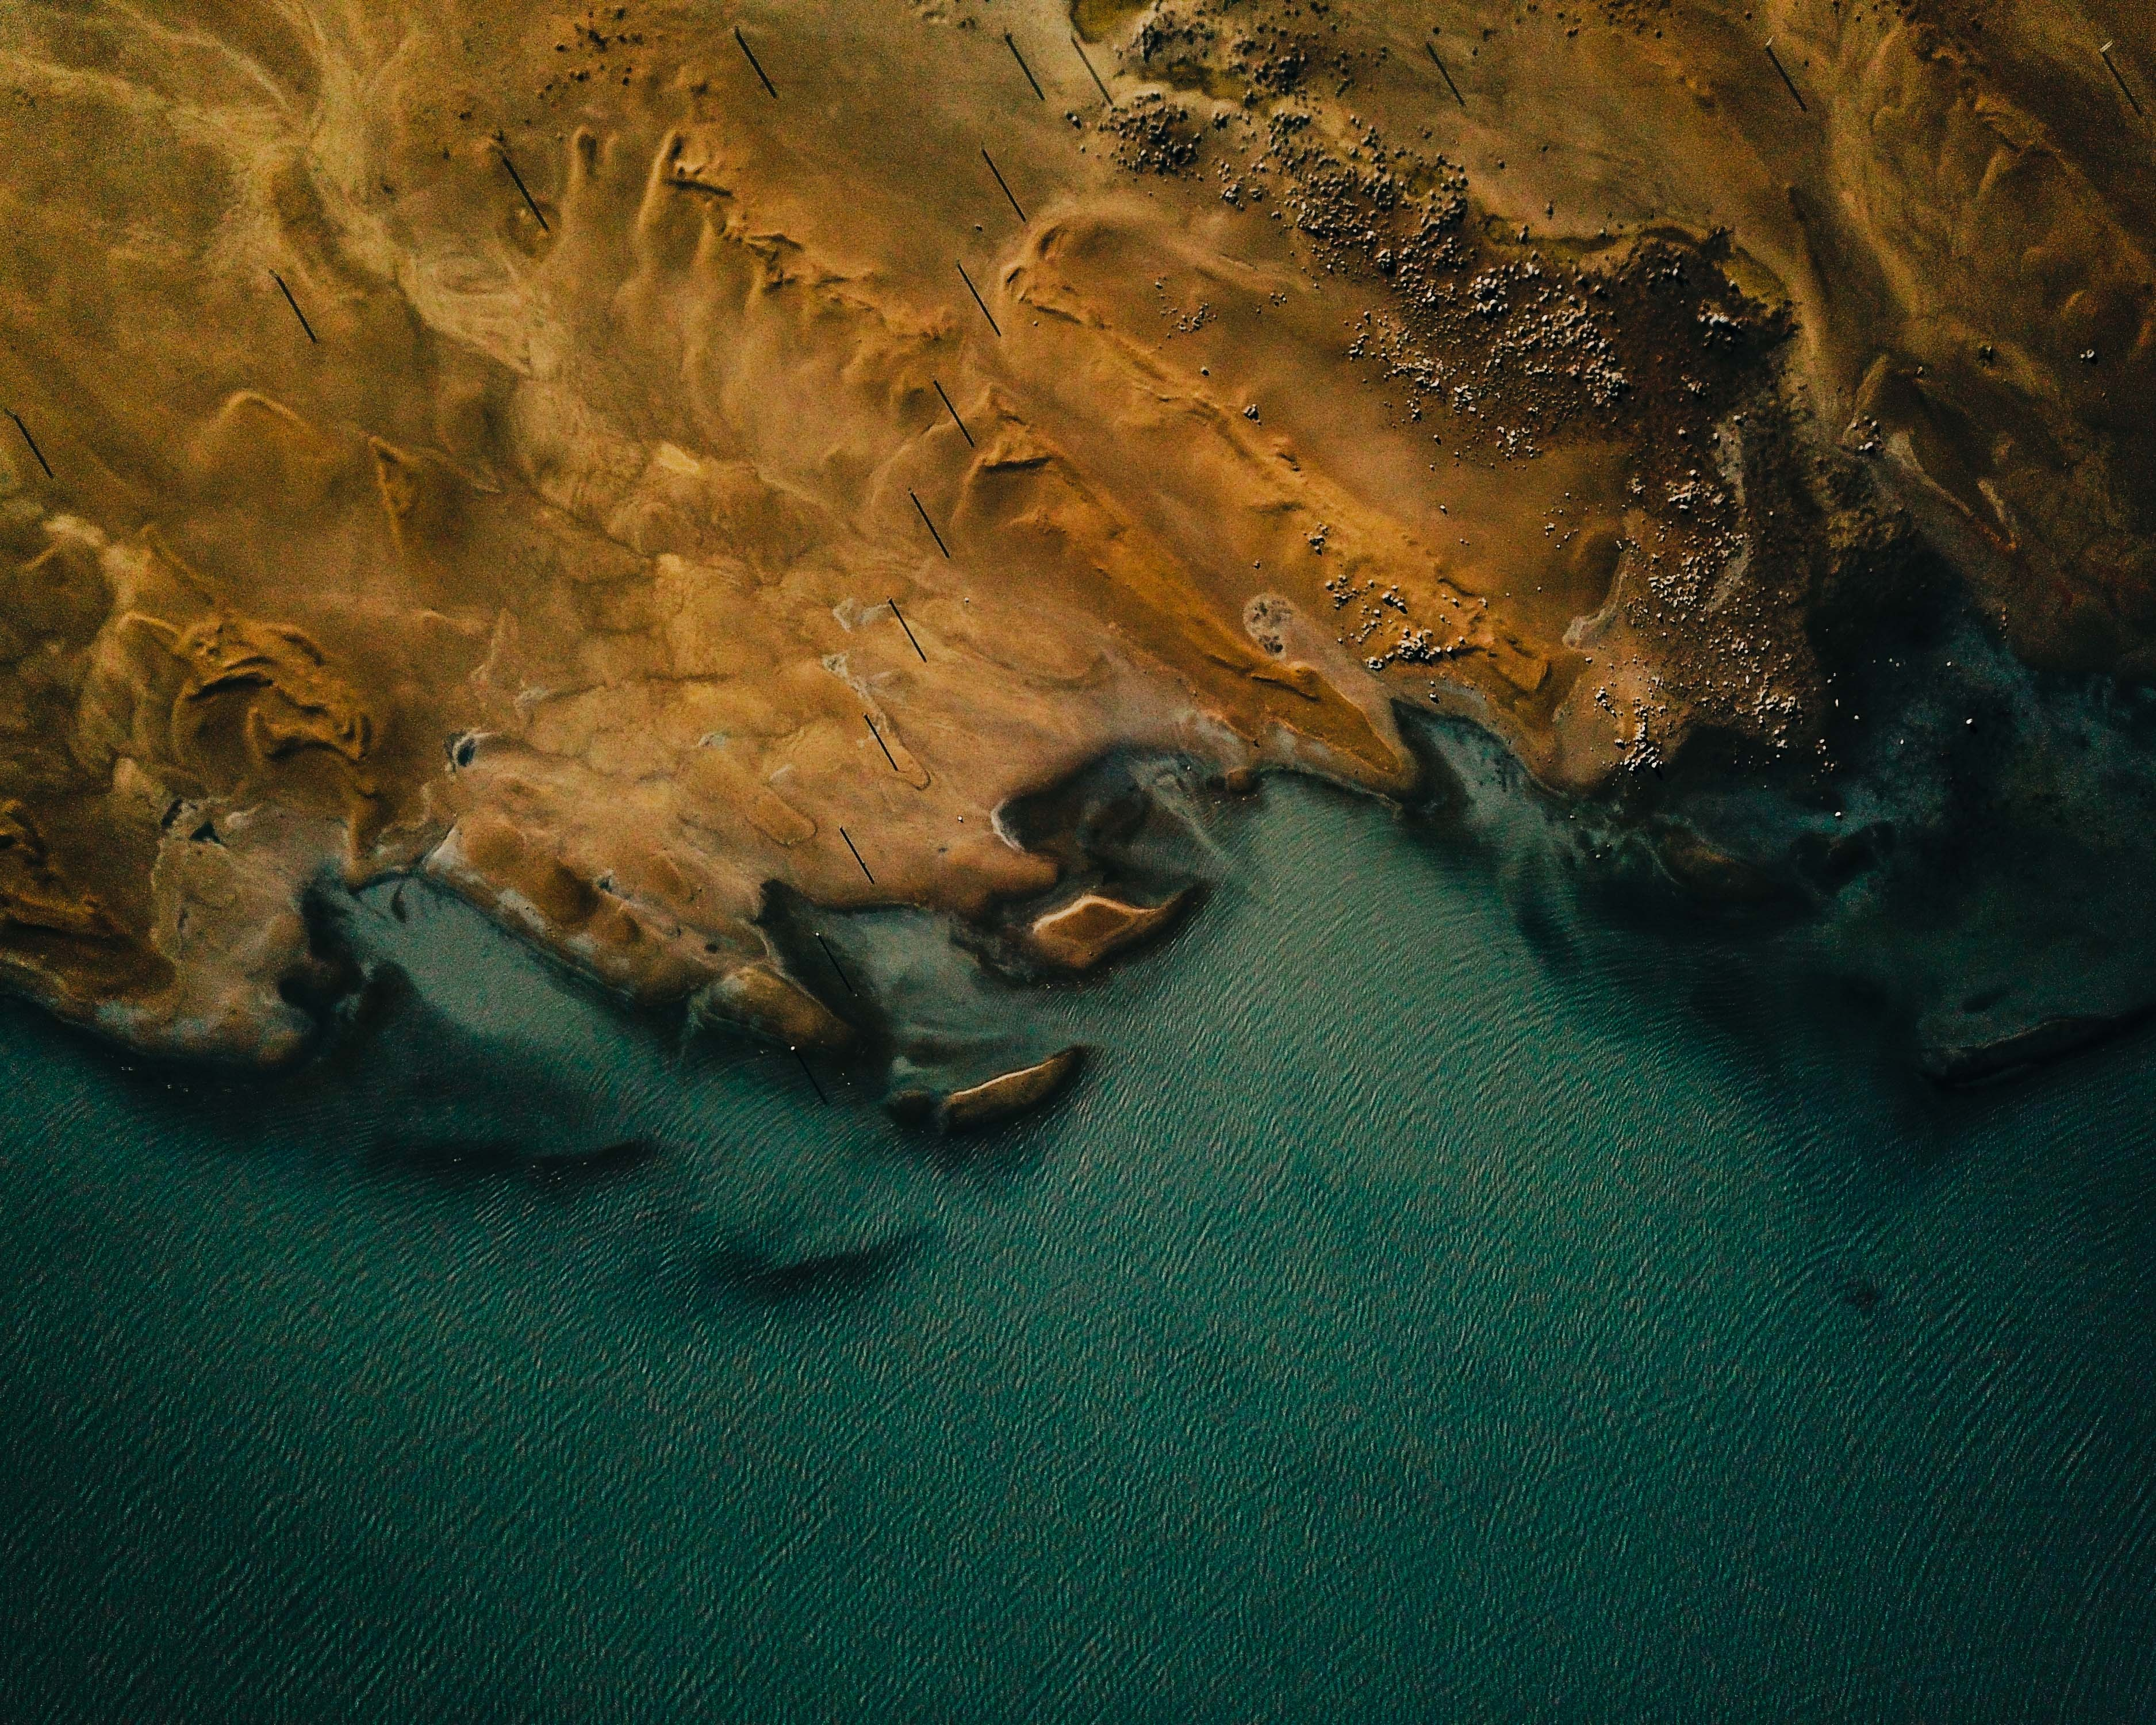 83678 download wallpaper View From Above, Nature, Water, Sea, Coast, Land, Earth screensavers and pictures for free